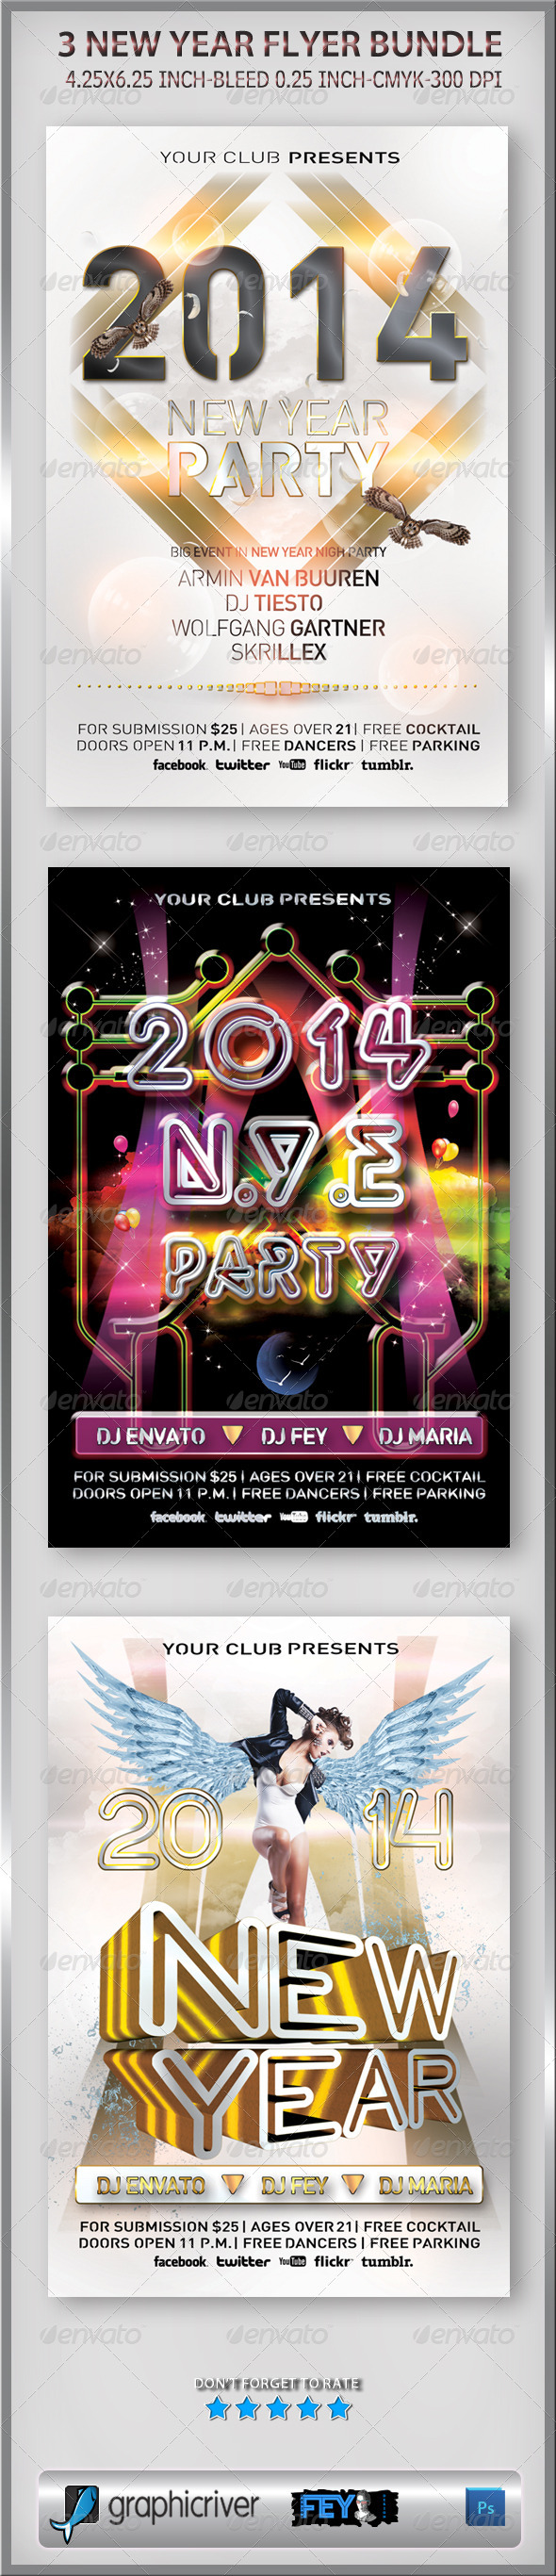 GraphicRiver 3 New Year Flyer Bundle 6353120